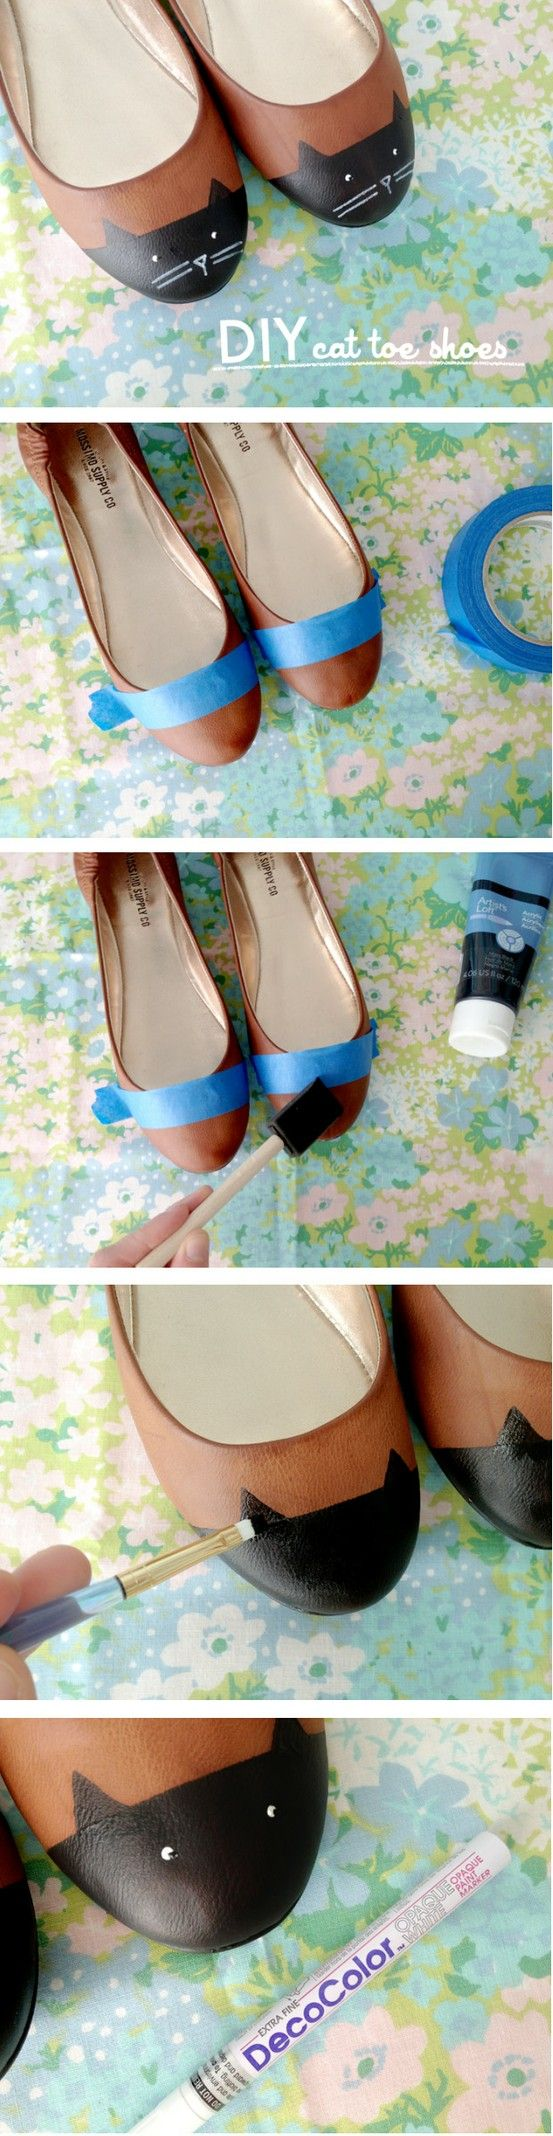 totally doing this! DIY cat toed shoes